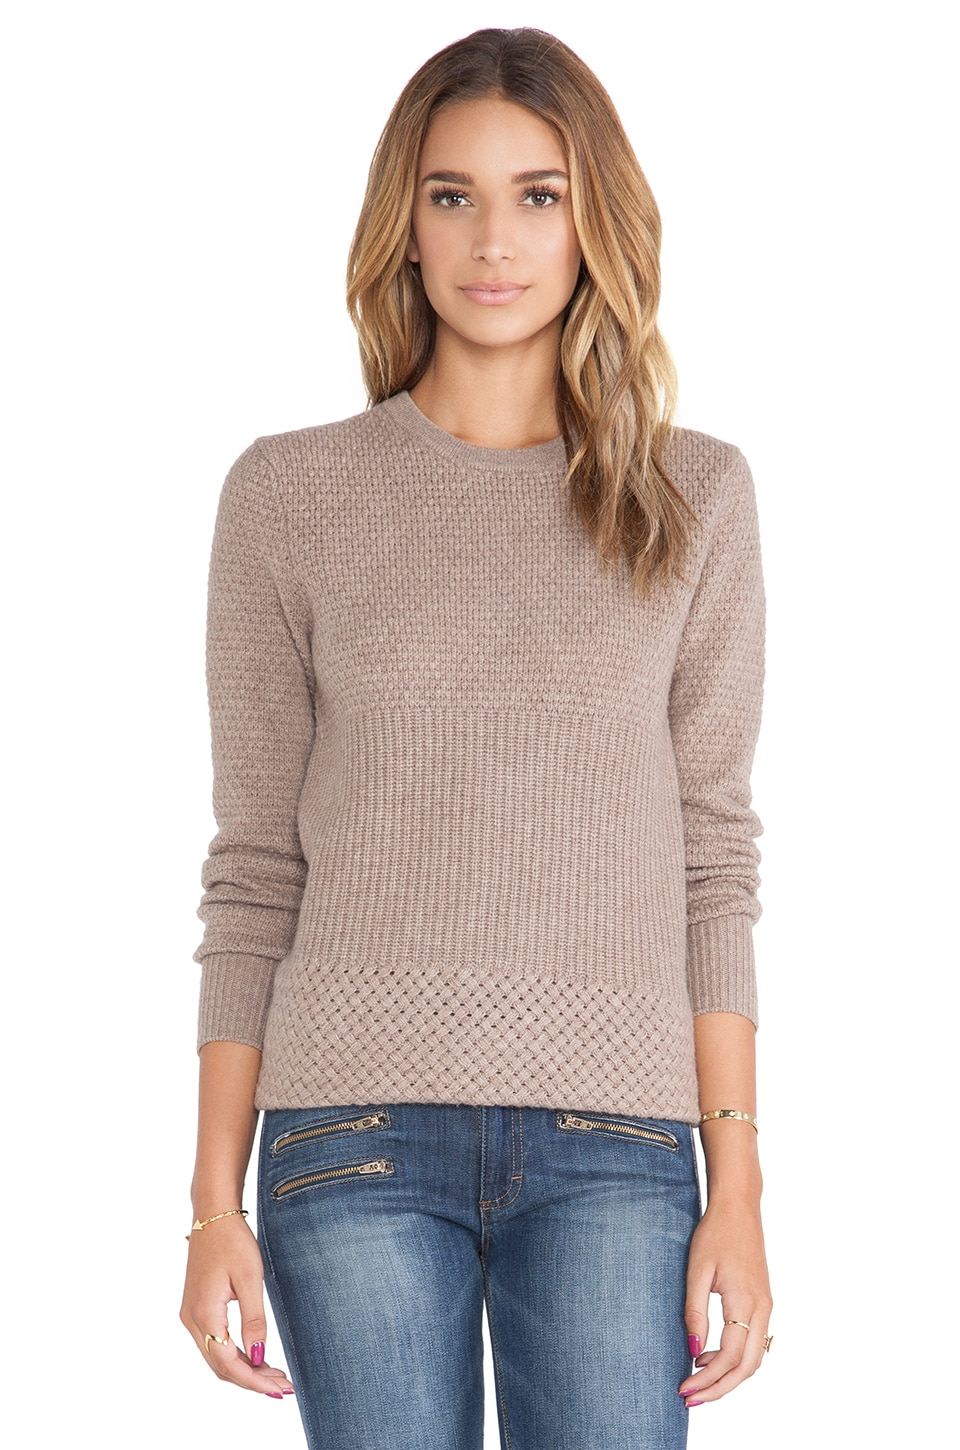 Equipment Rei Crewneck Sweater in Heather Brown